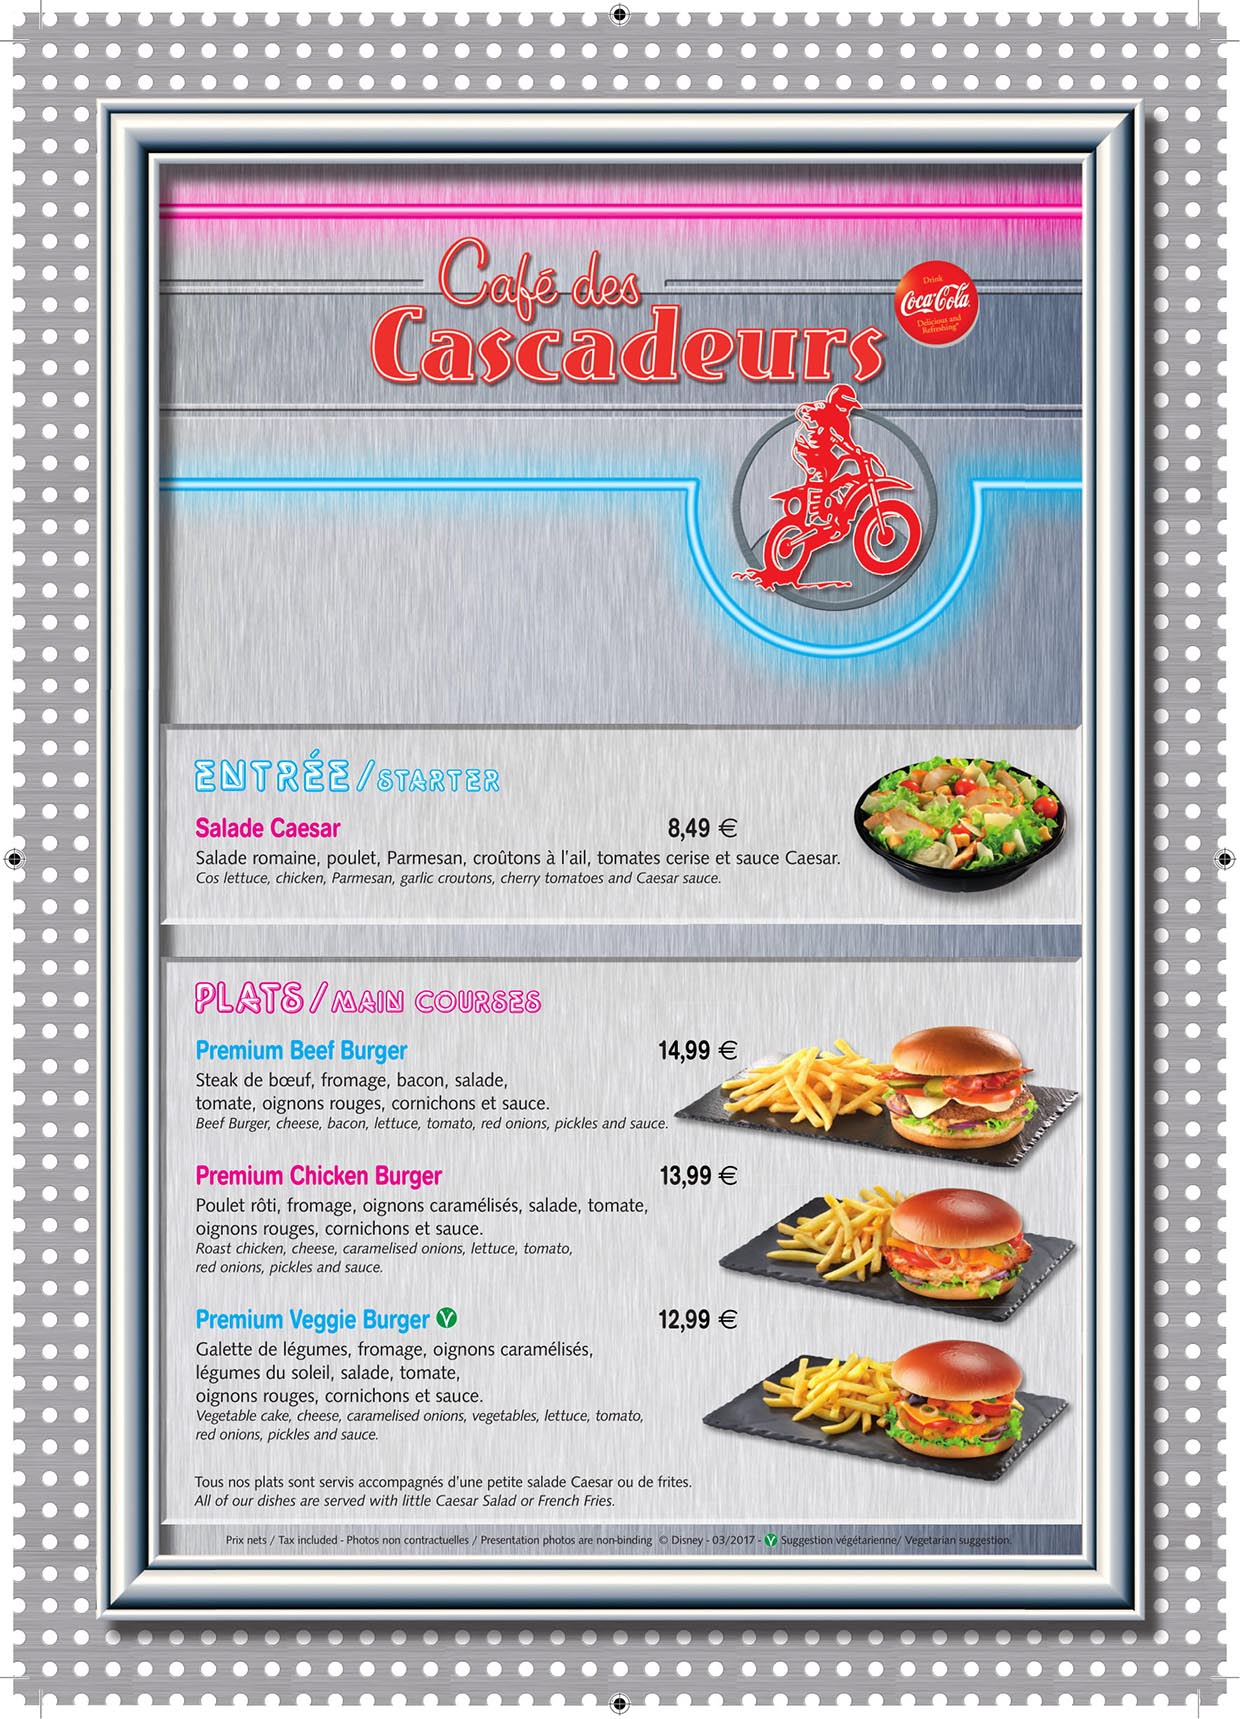 Disneyland Paris Cafe des Cascadeurs Menu